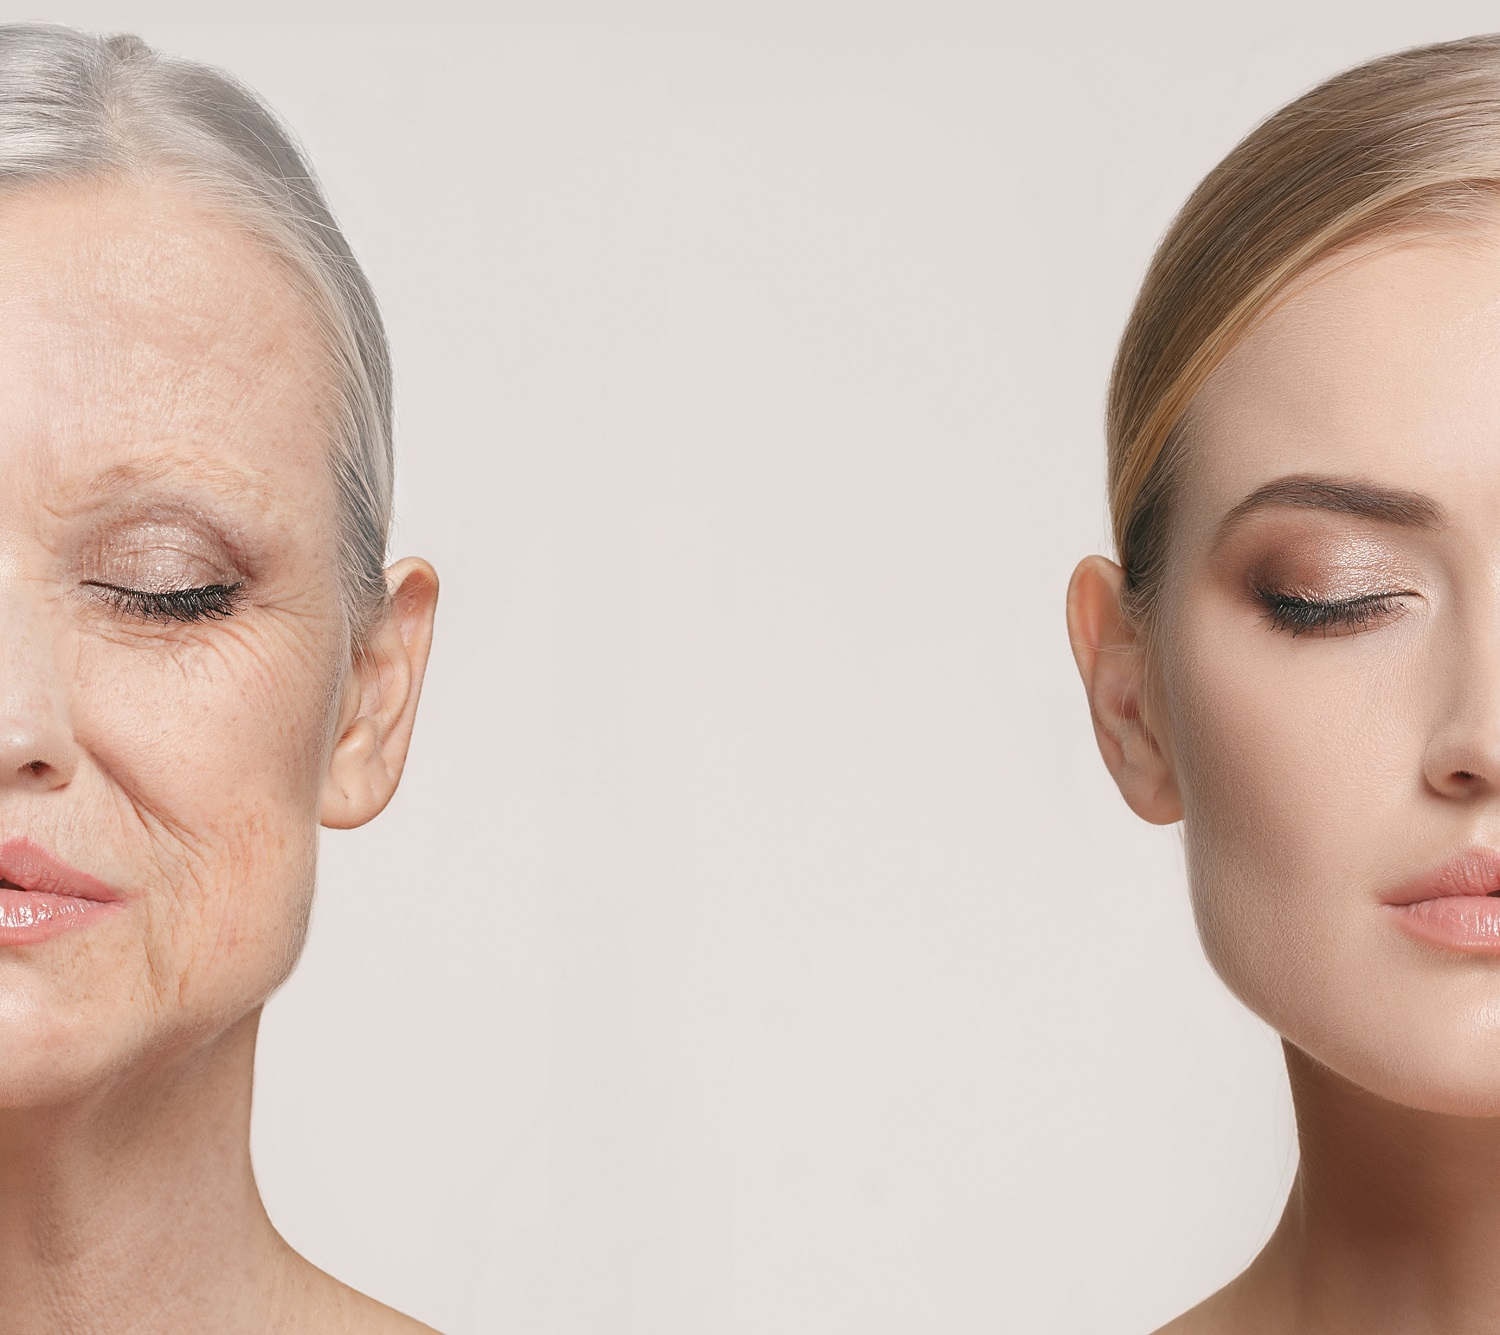 Expert tips to take care of aging in your 20s, 30s, 40s and beyond